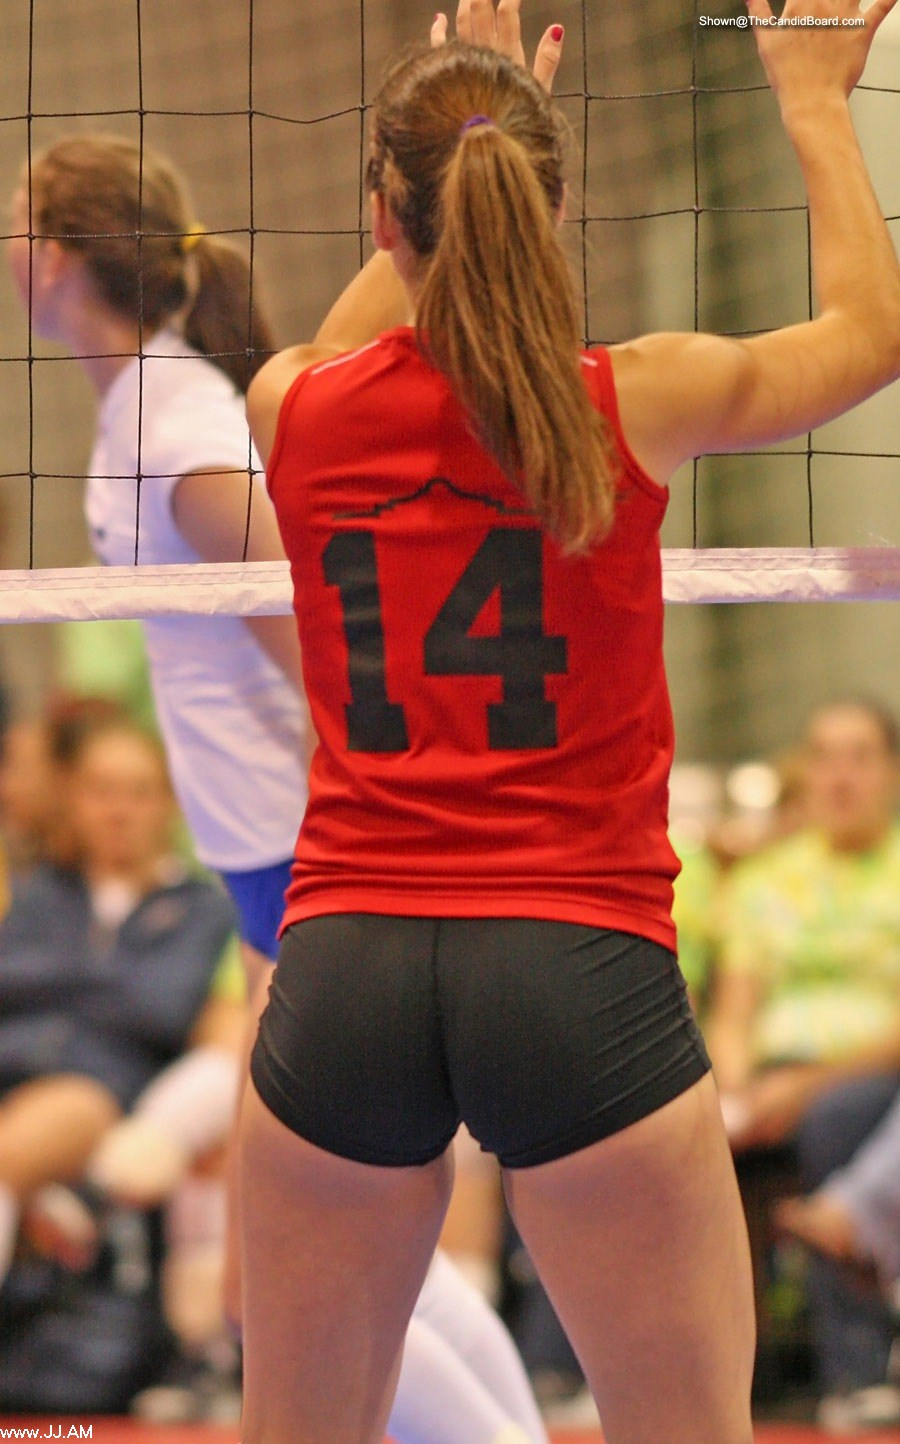 Volleyball butt in tight shorts